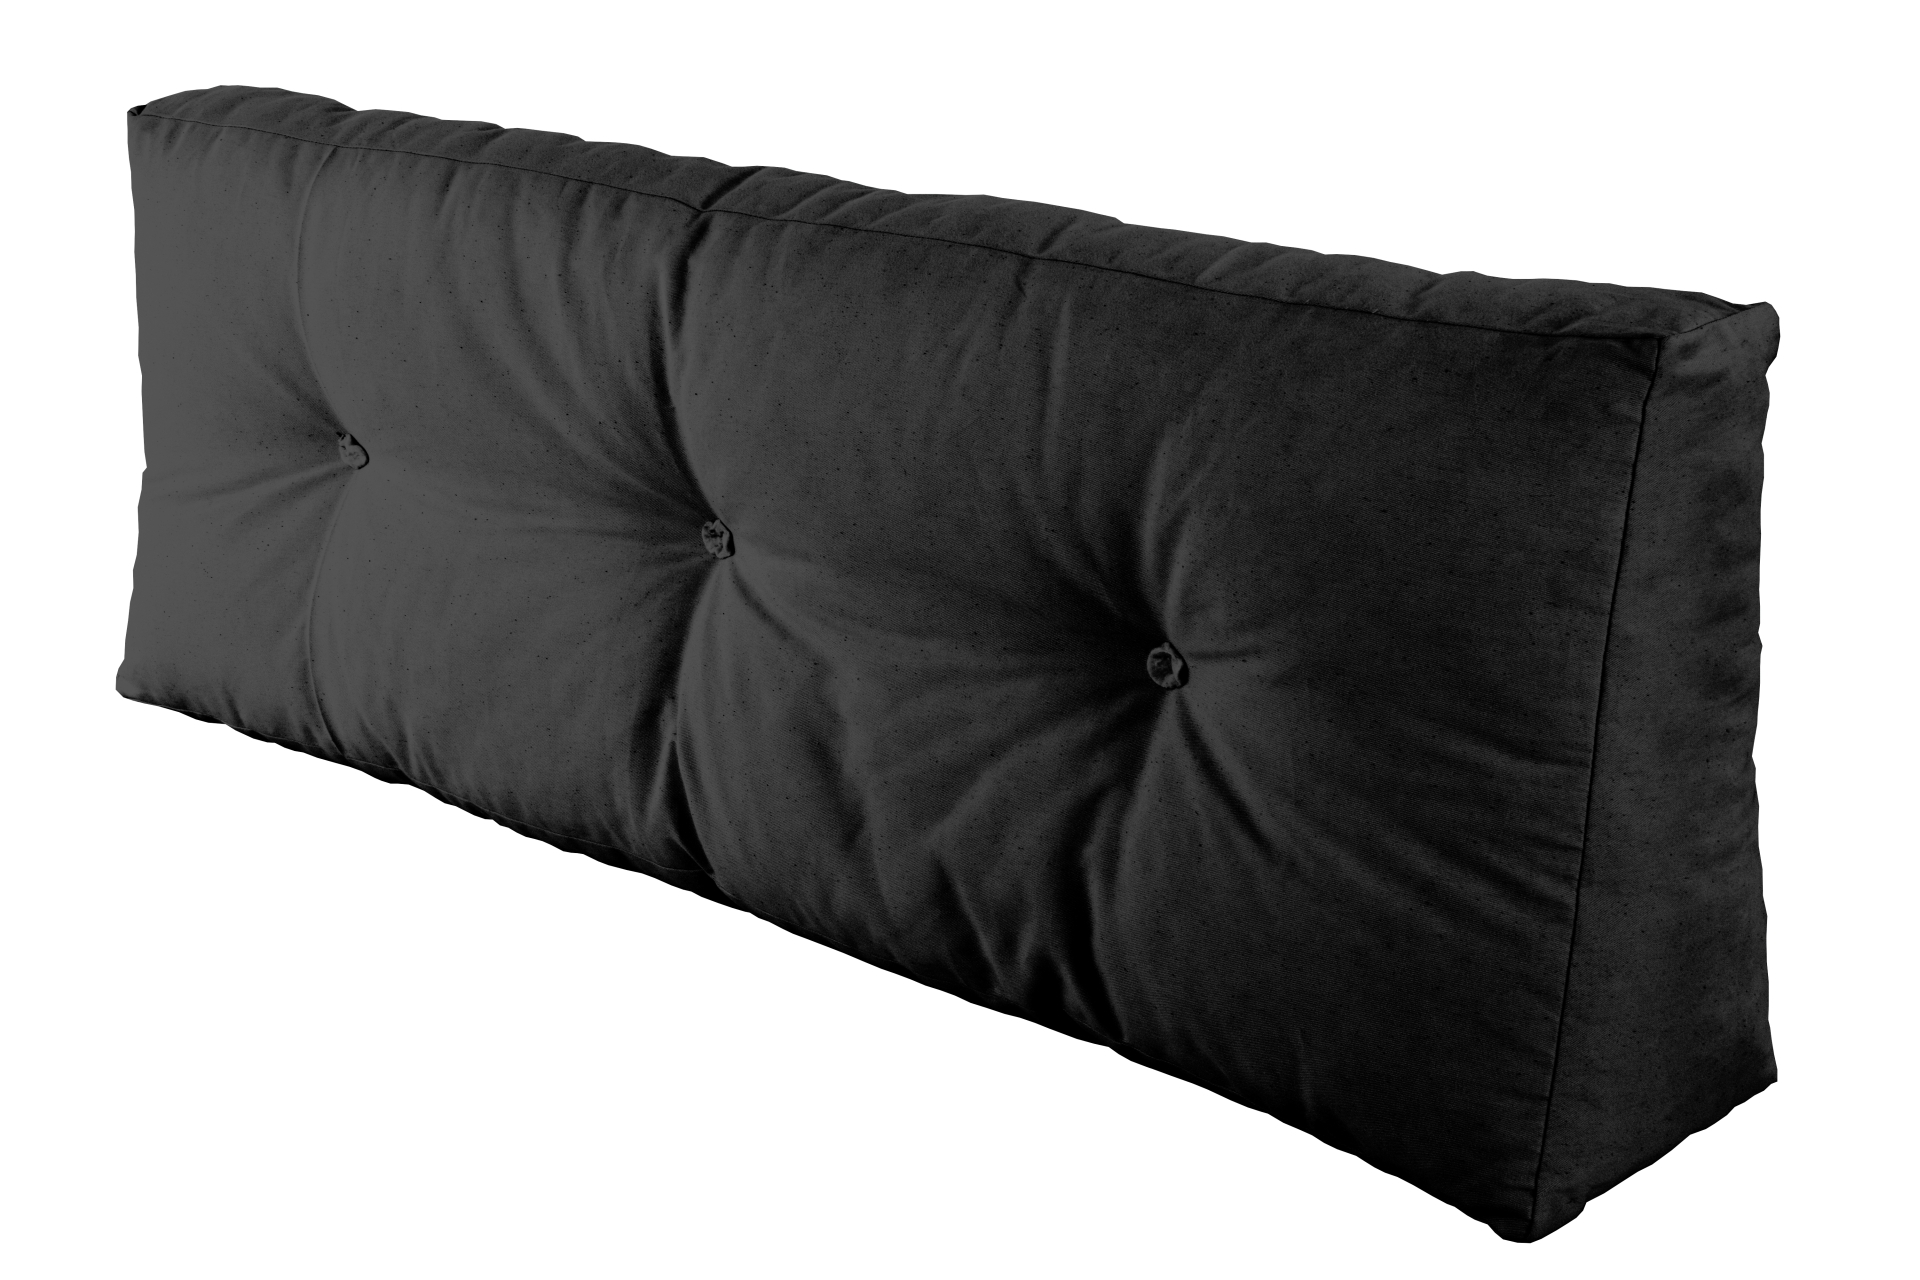 r ckenkissen keilkissen f r paletten sofa indoor 120 x 40 cm ebay. Black Bedroom Furniture Sets. Home Design Ideas